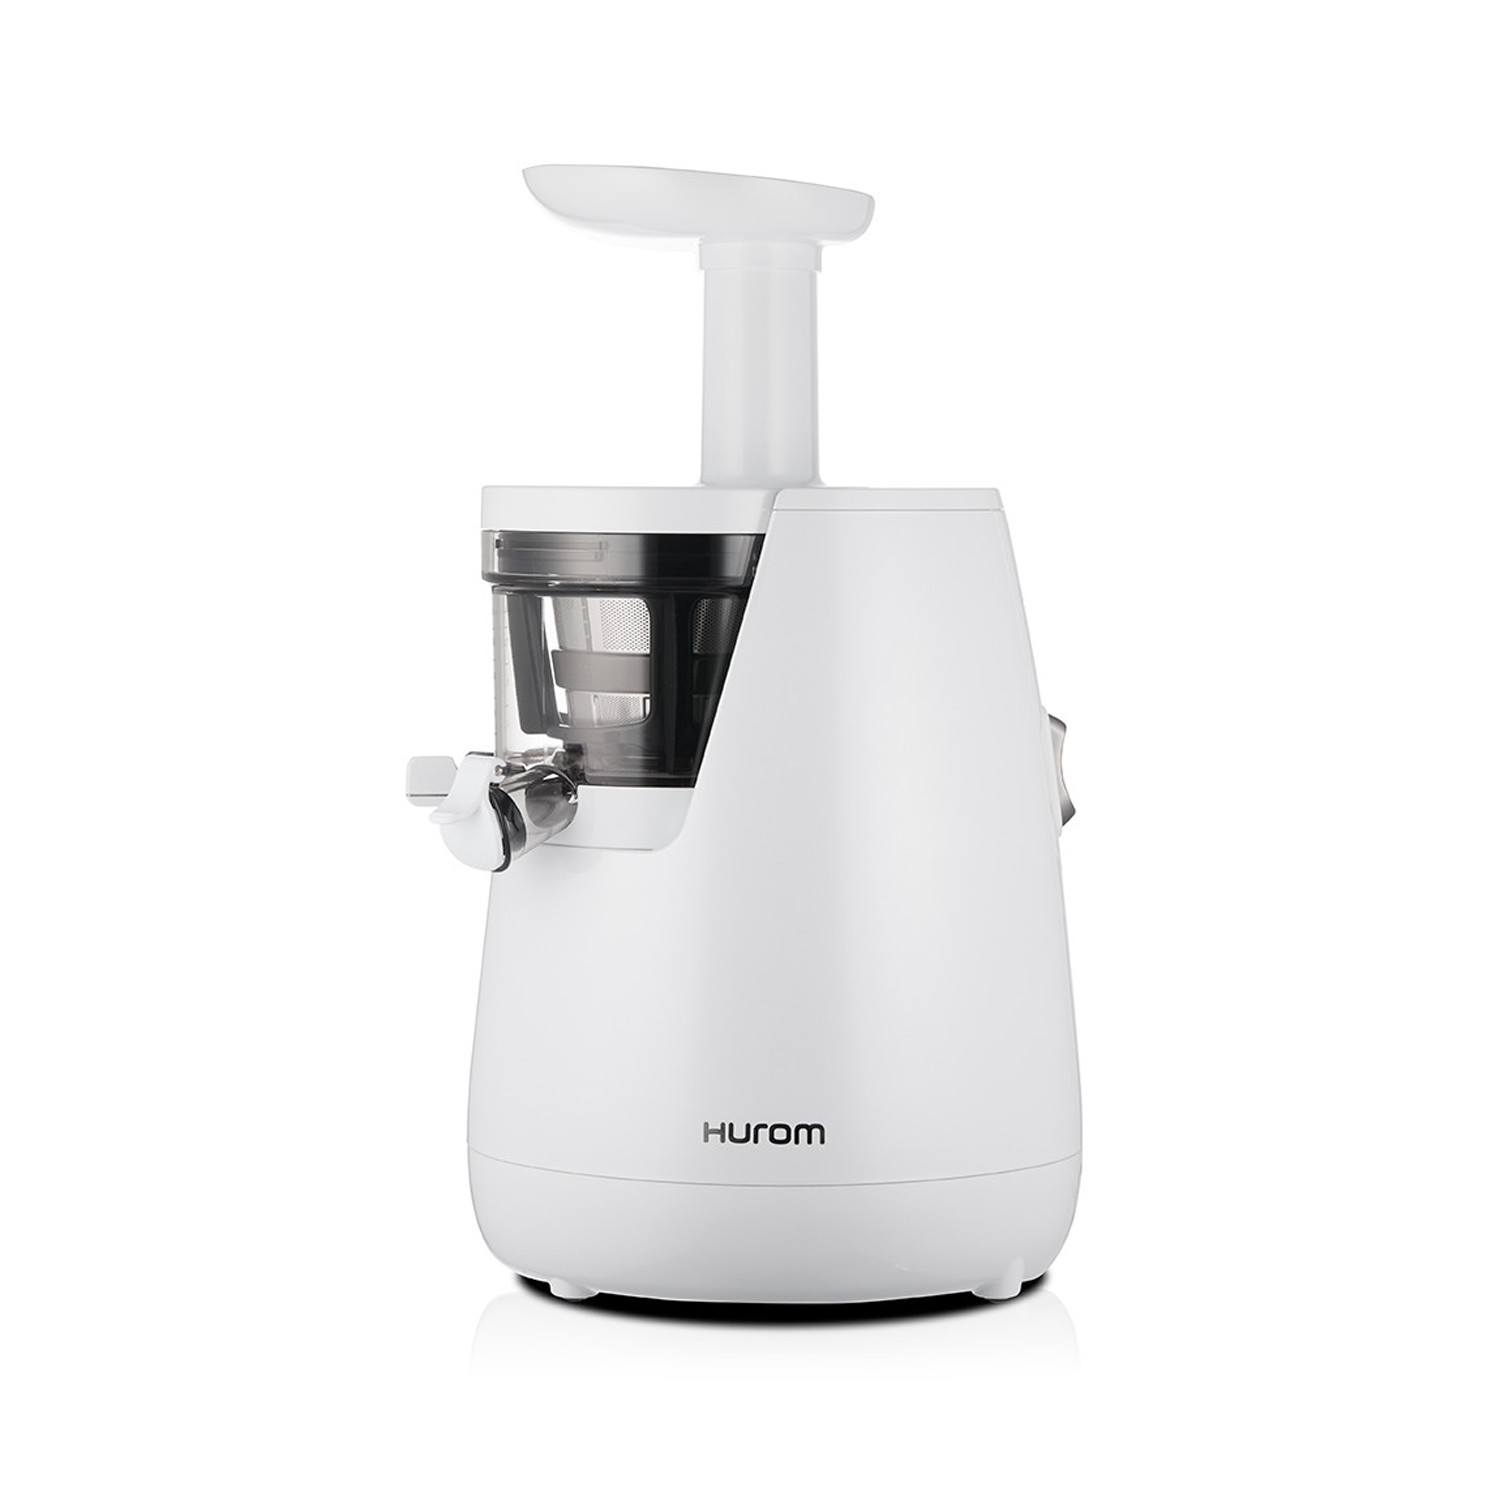 HO Hurom Slow Juicer - Hurom - Touch of Modern